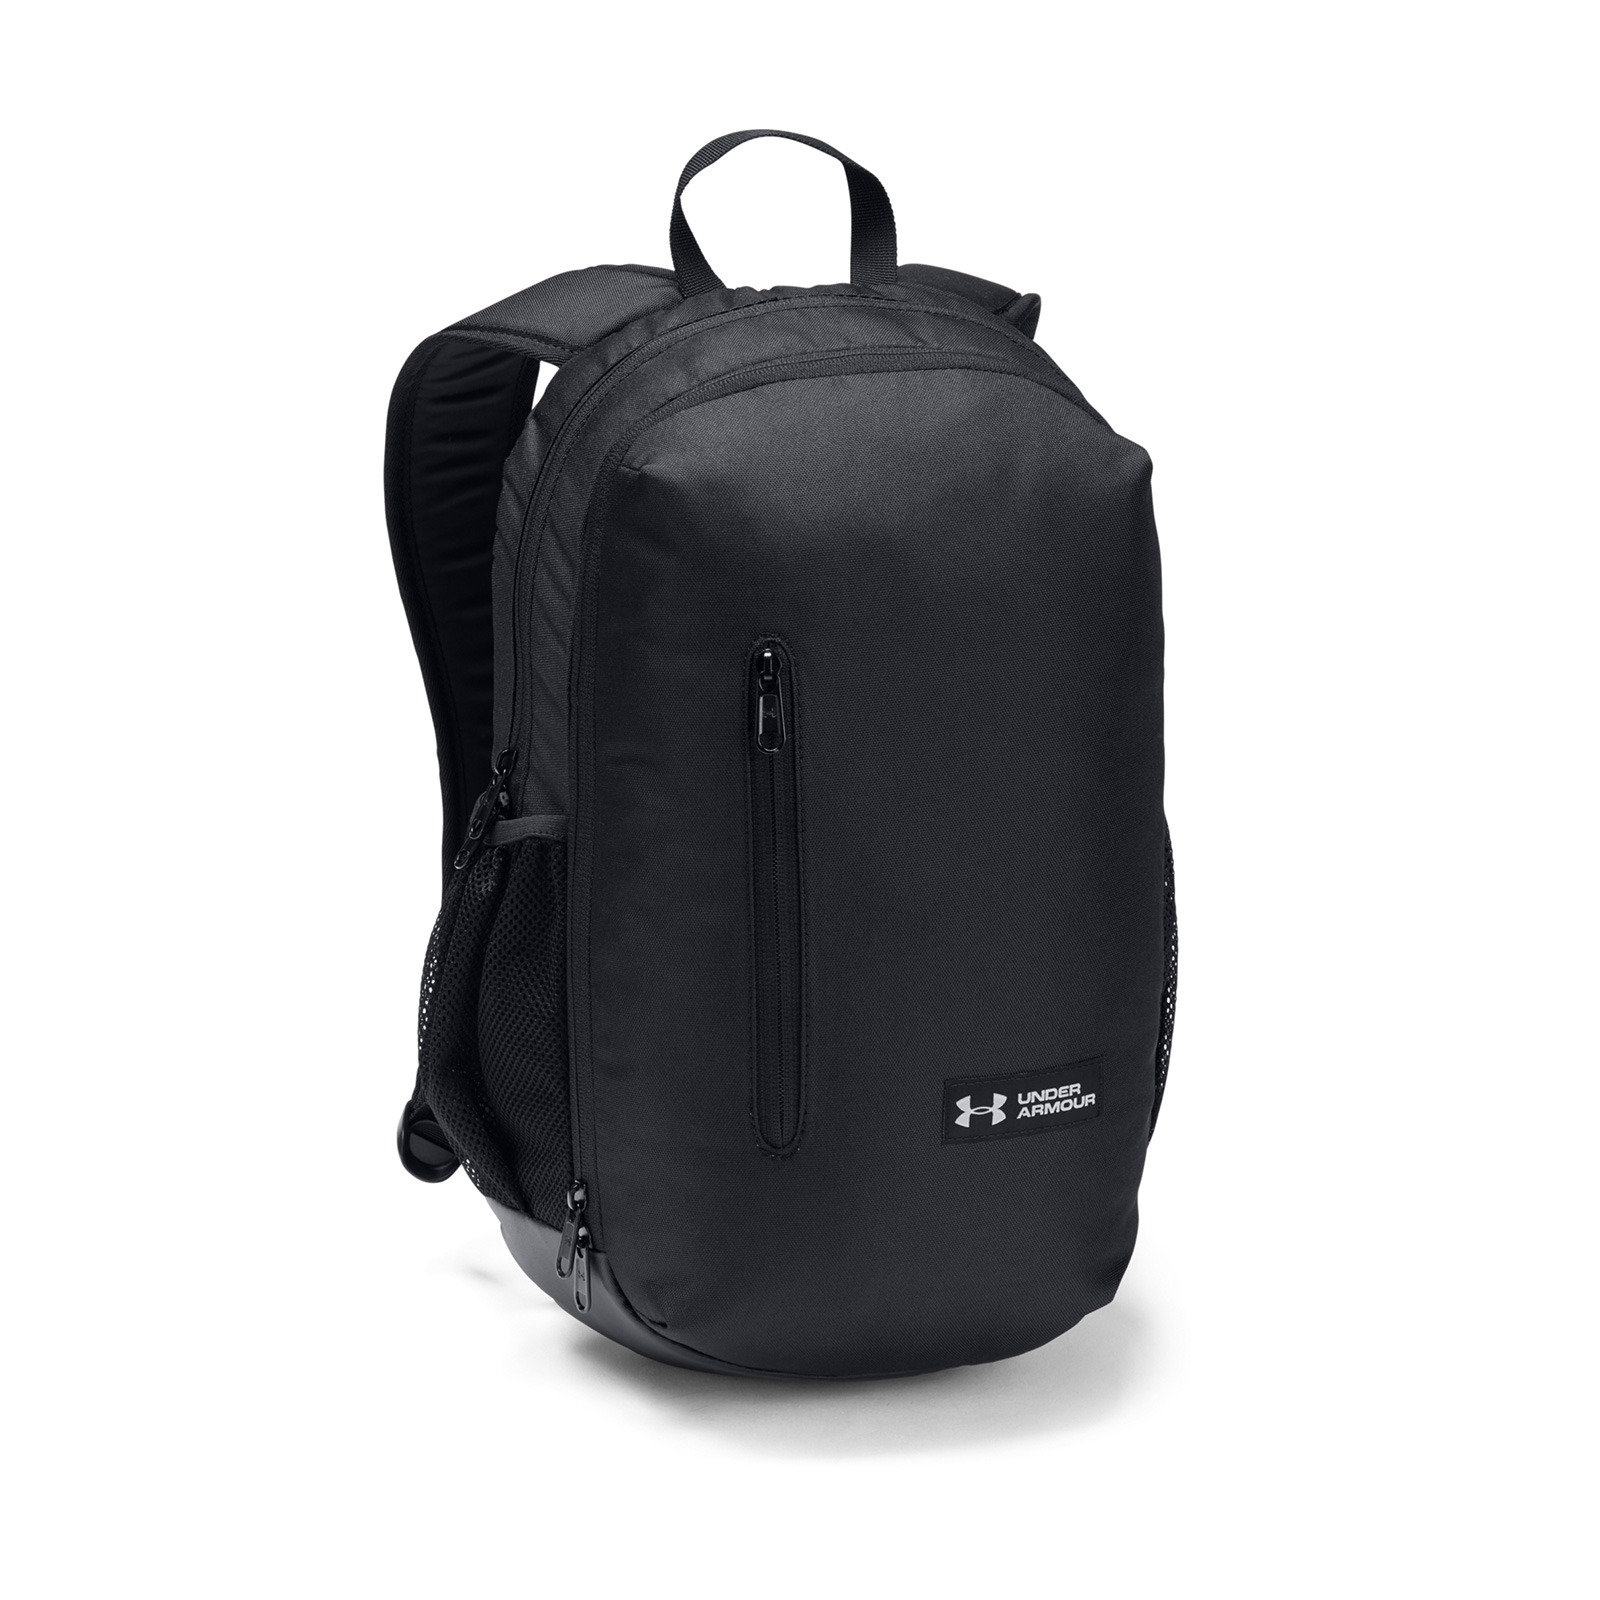 Under Armour - 1327793 UA ROLAND BACKPACK - 001/71Y1